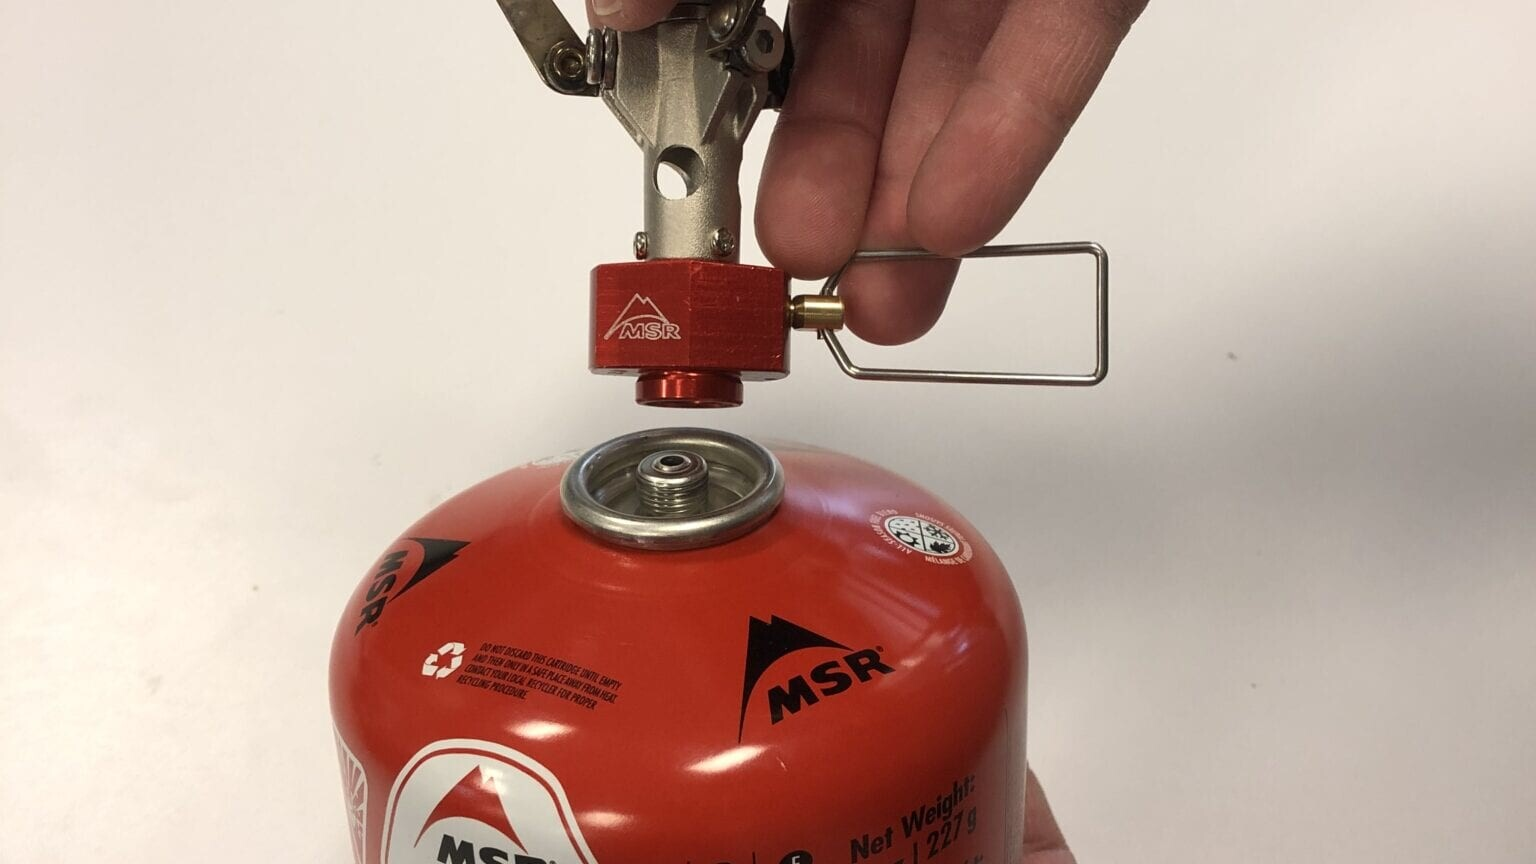 A backpacking stove being connected to a fuel canister.